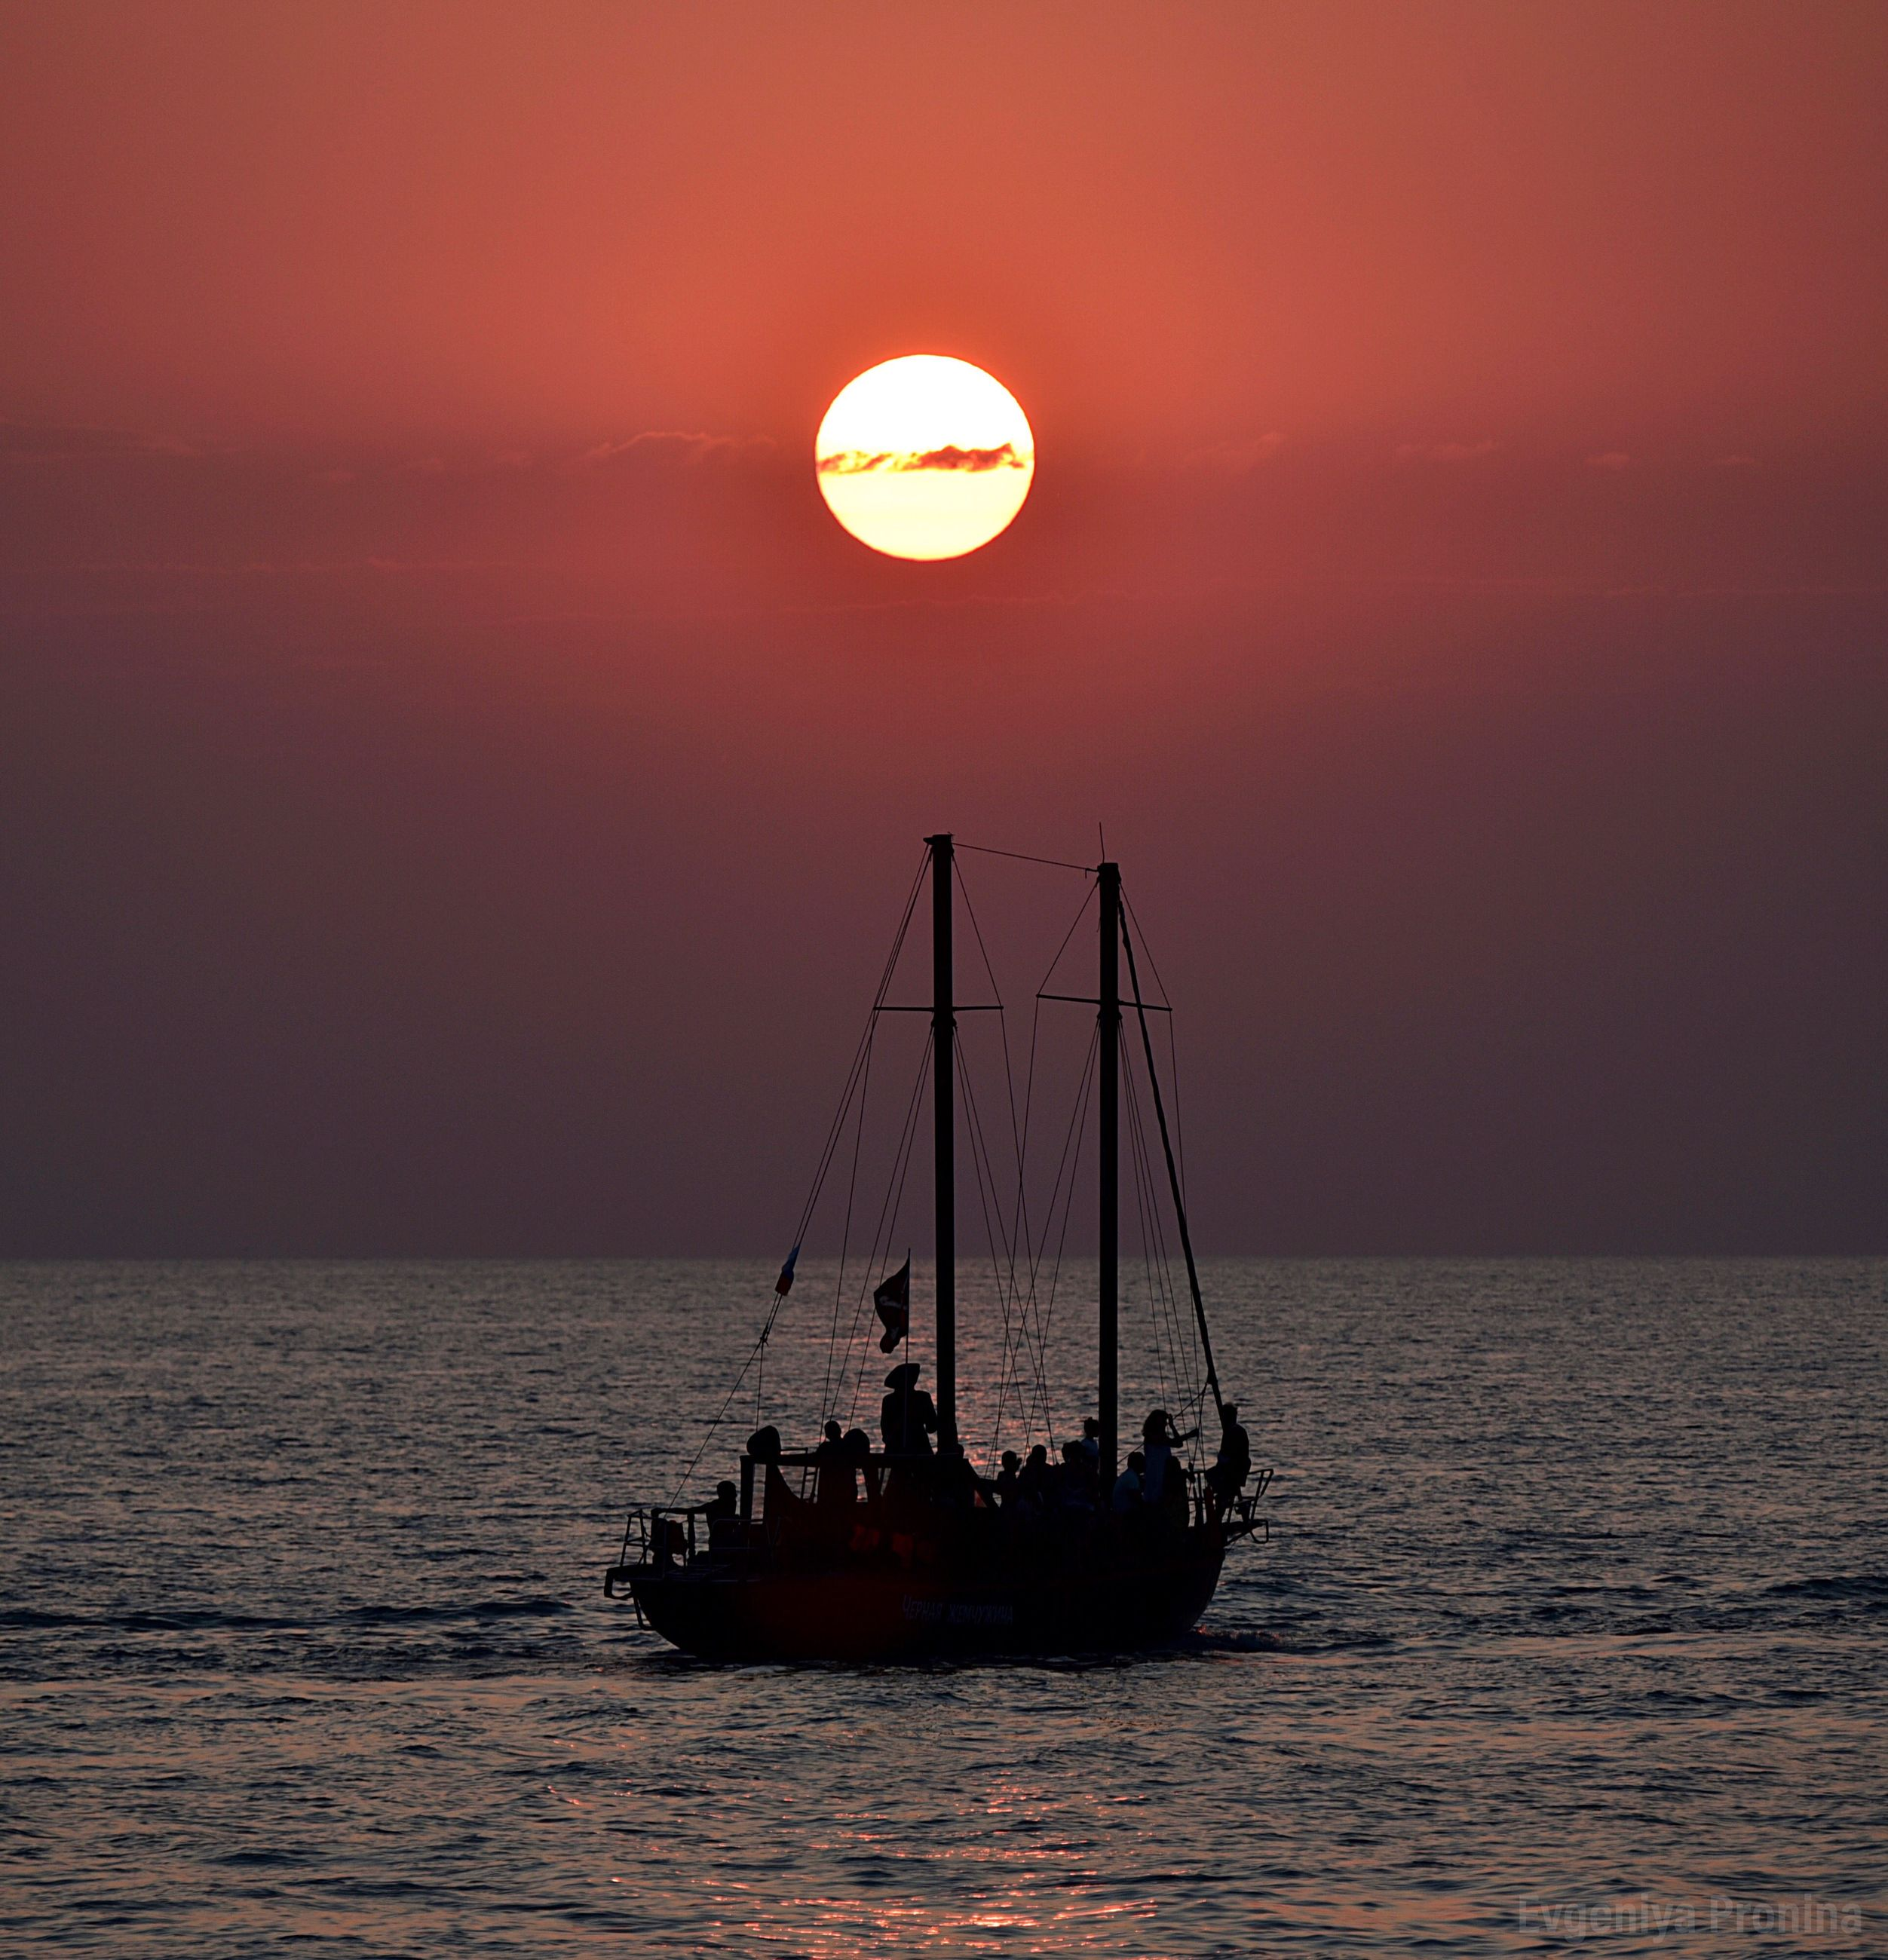 sea, sky, water, sunset, nautical vessel, scenics - nature, horizon over water, sun, waterfront, beauty in nature, transportation, horizon, silhouette, orange color, mode of transportation, idyllic, tranquility, nature, tranquil scene, sailboat, outdoors